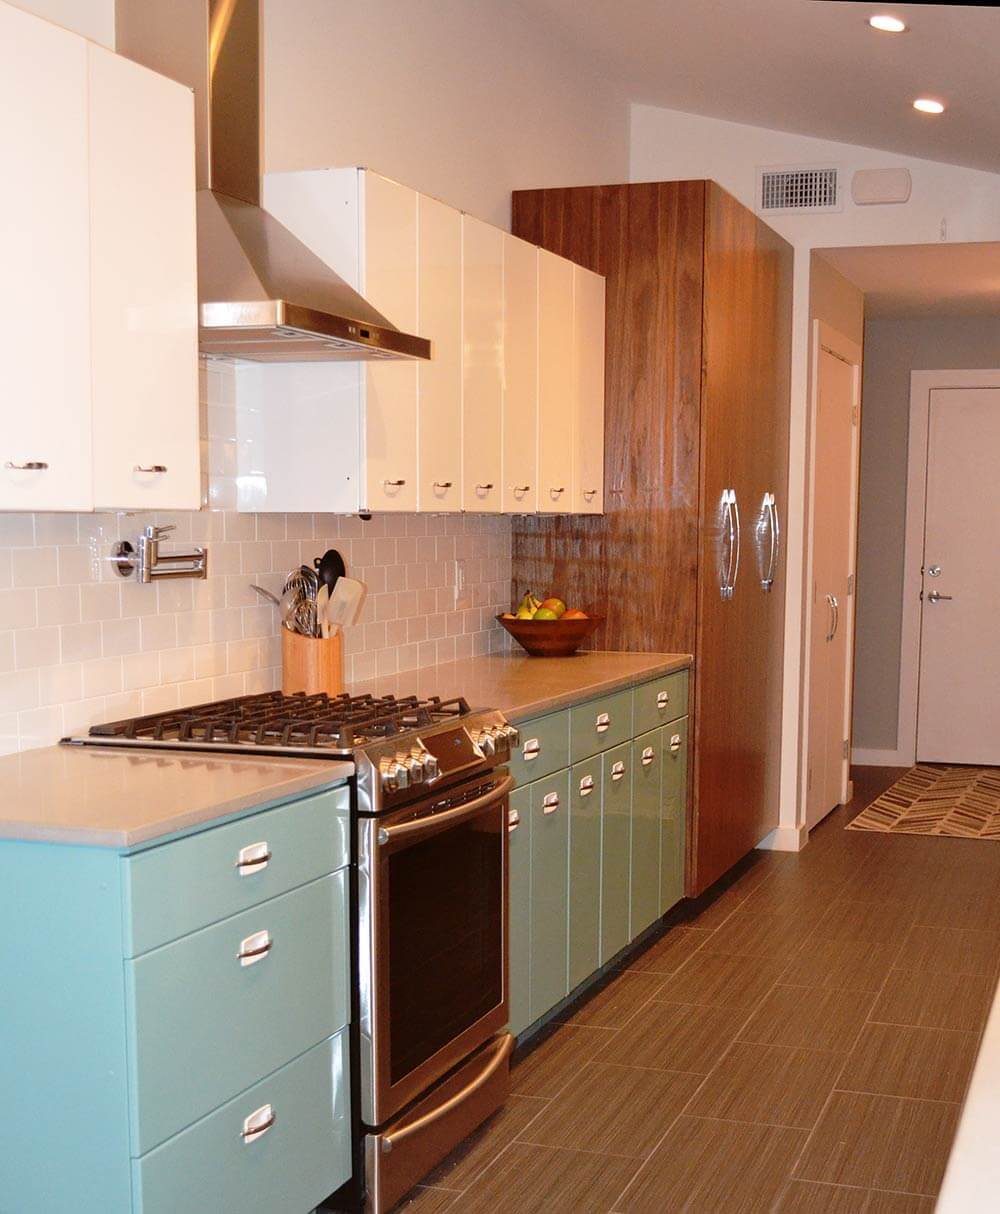 Sam Has A Great Experience With Powder Coating Her Vintage Steel Kitchen Cabinets Retro Renovation